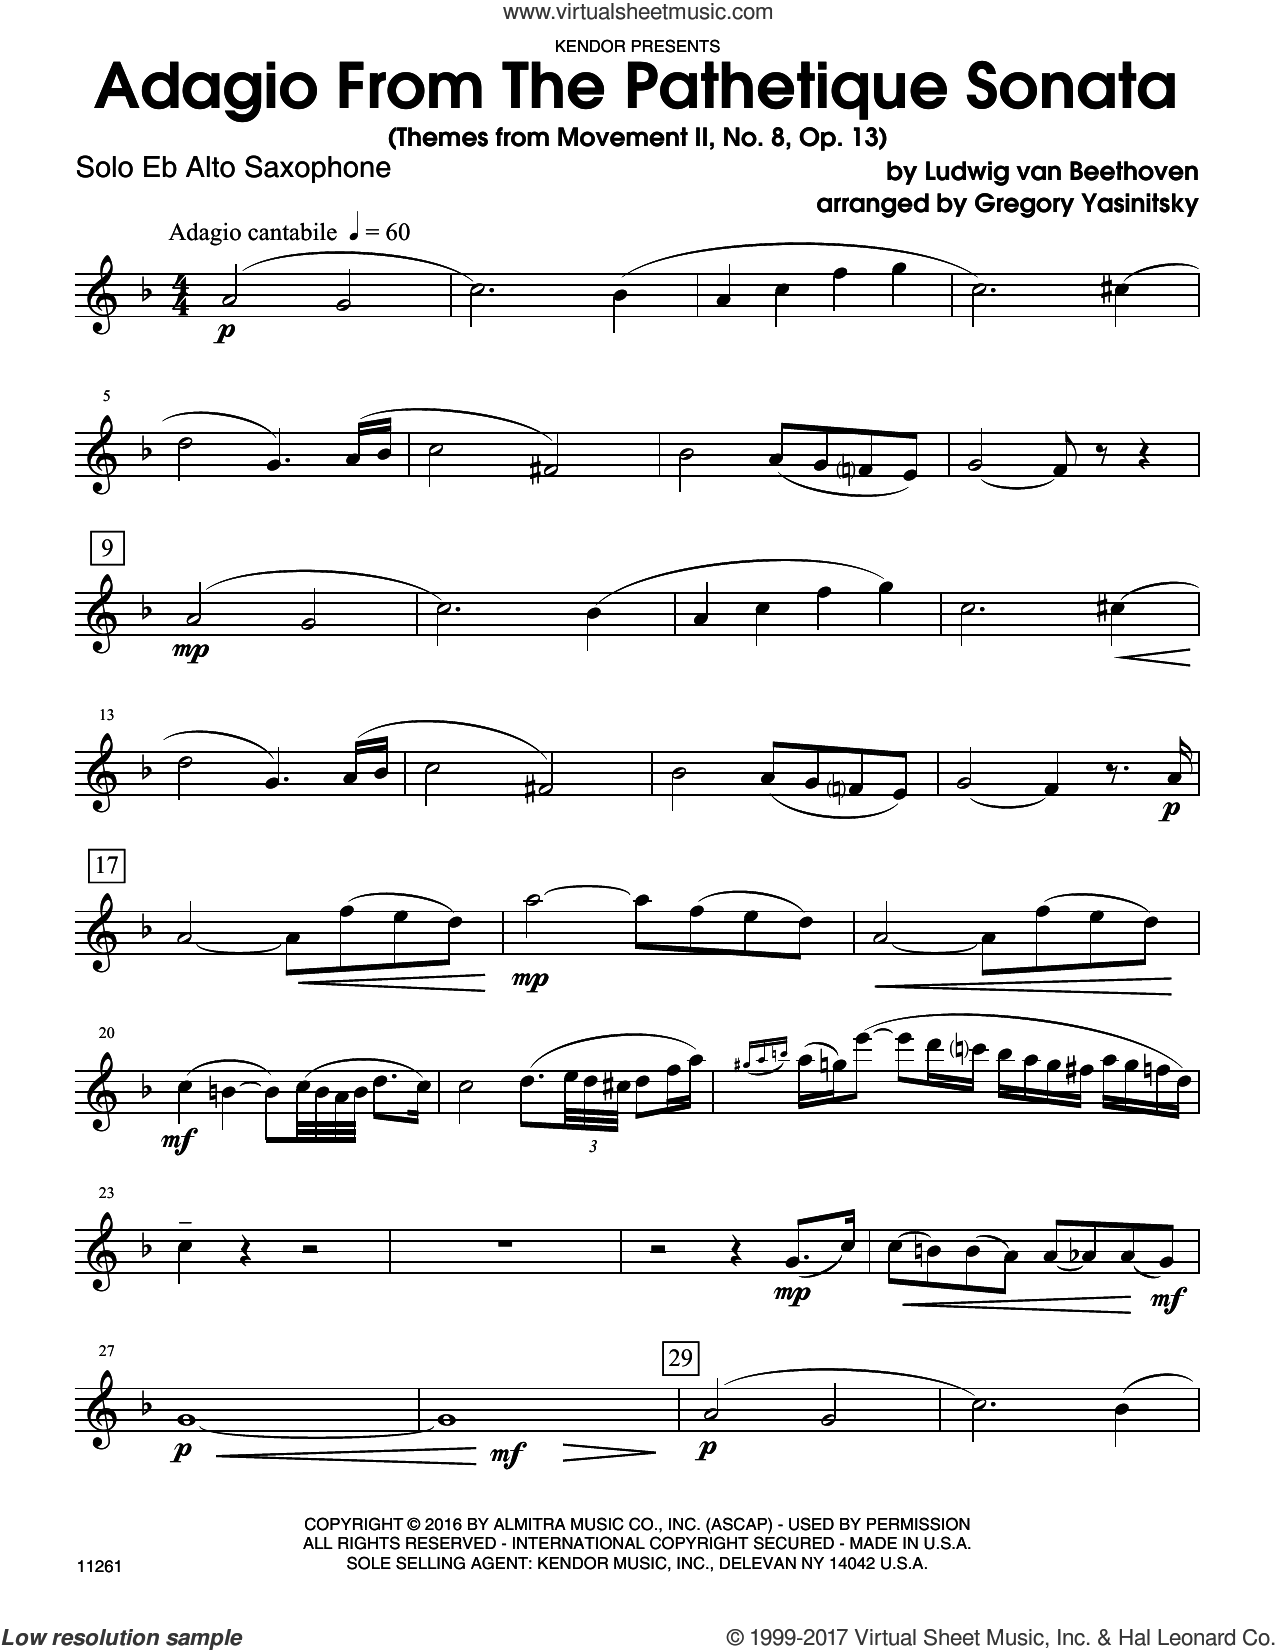 Adagio From The Pathetique Sonata (Themes From Movement II, No. 8, Op. 13) (complete set of parts) sheet music for alto saxophone and piano by Ludwig van Beethoven and Yasinitsky, classical score, intermediate skill level